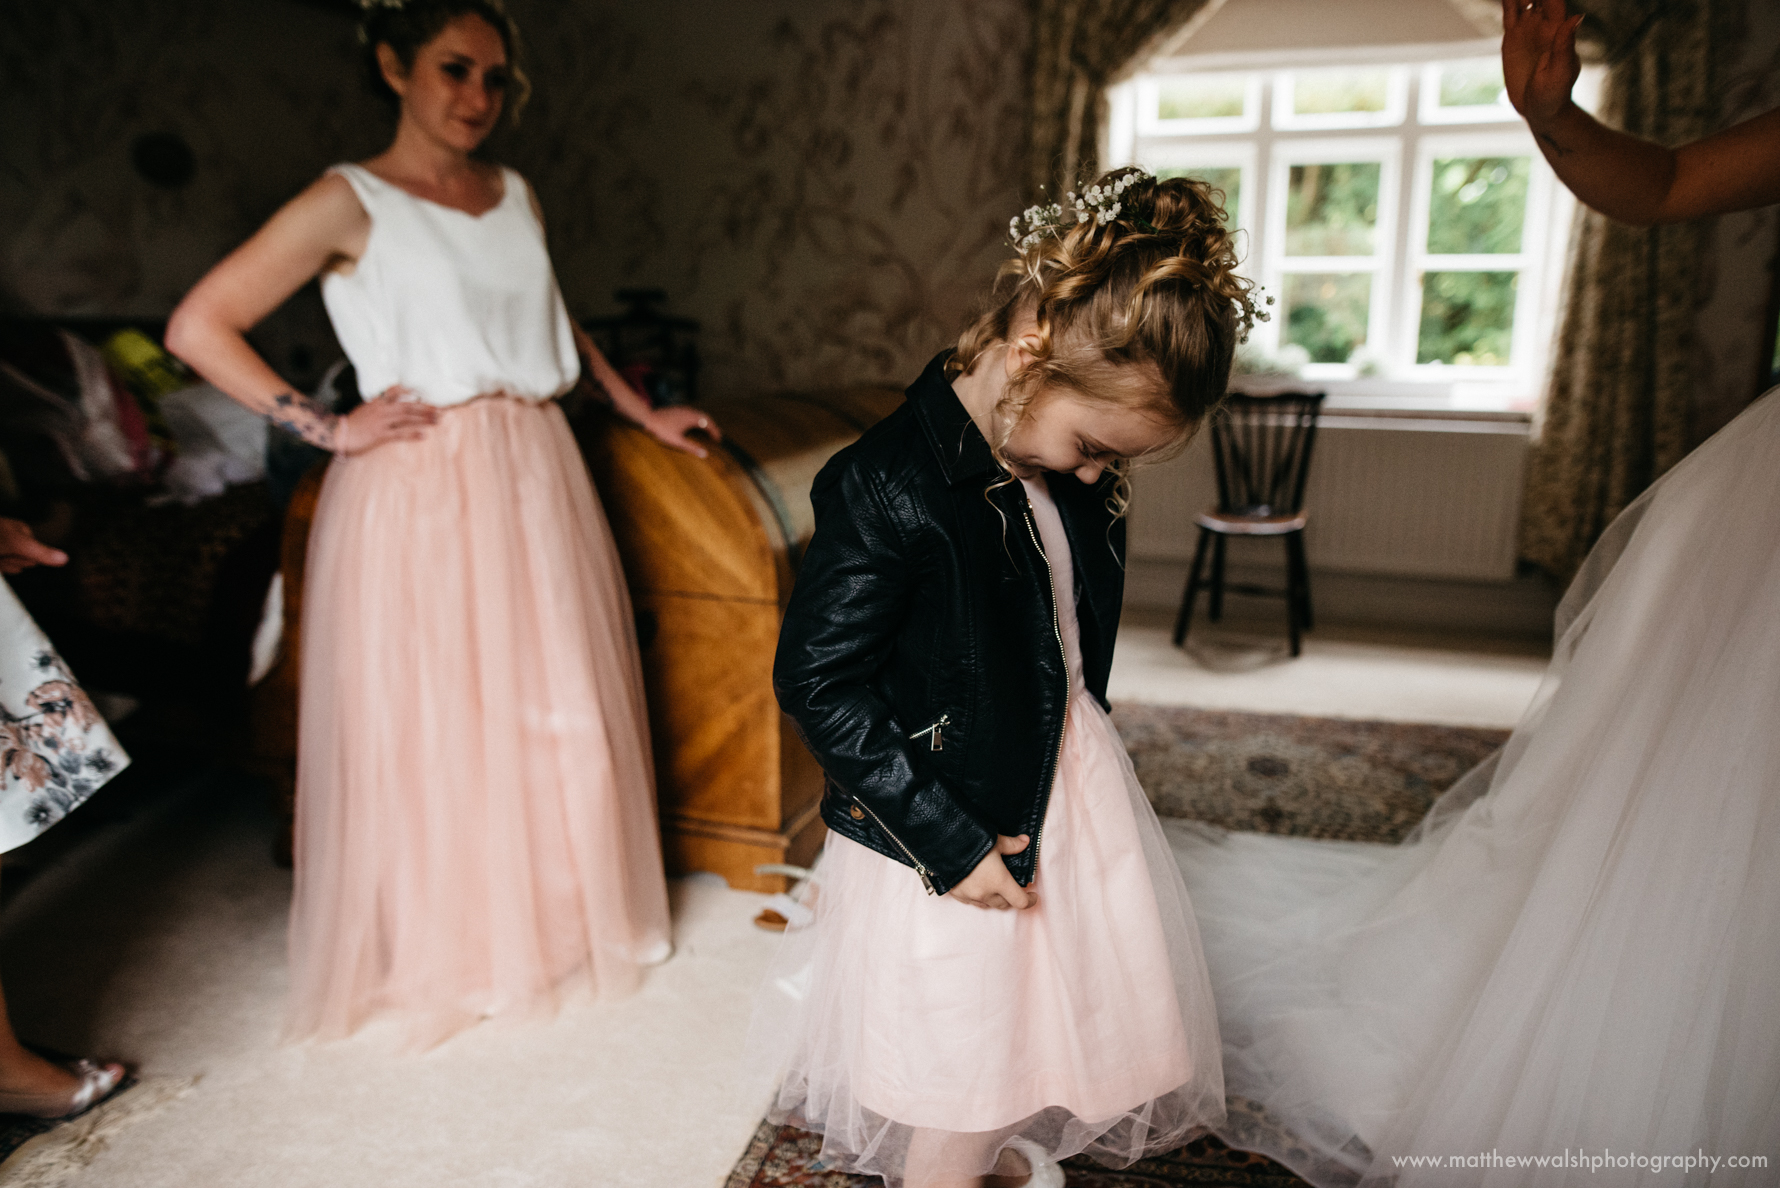 Flower girl wearing a super stylish leather jacket, ready for any weather the day may give.